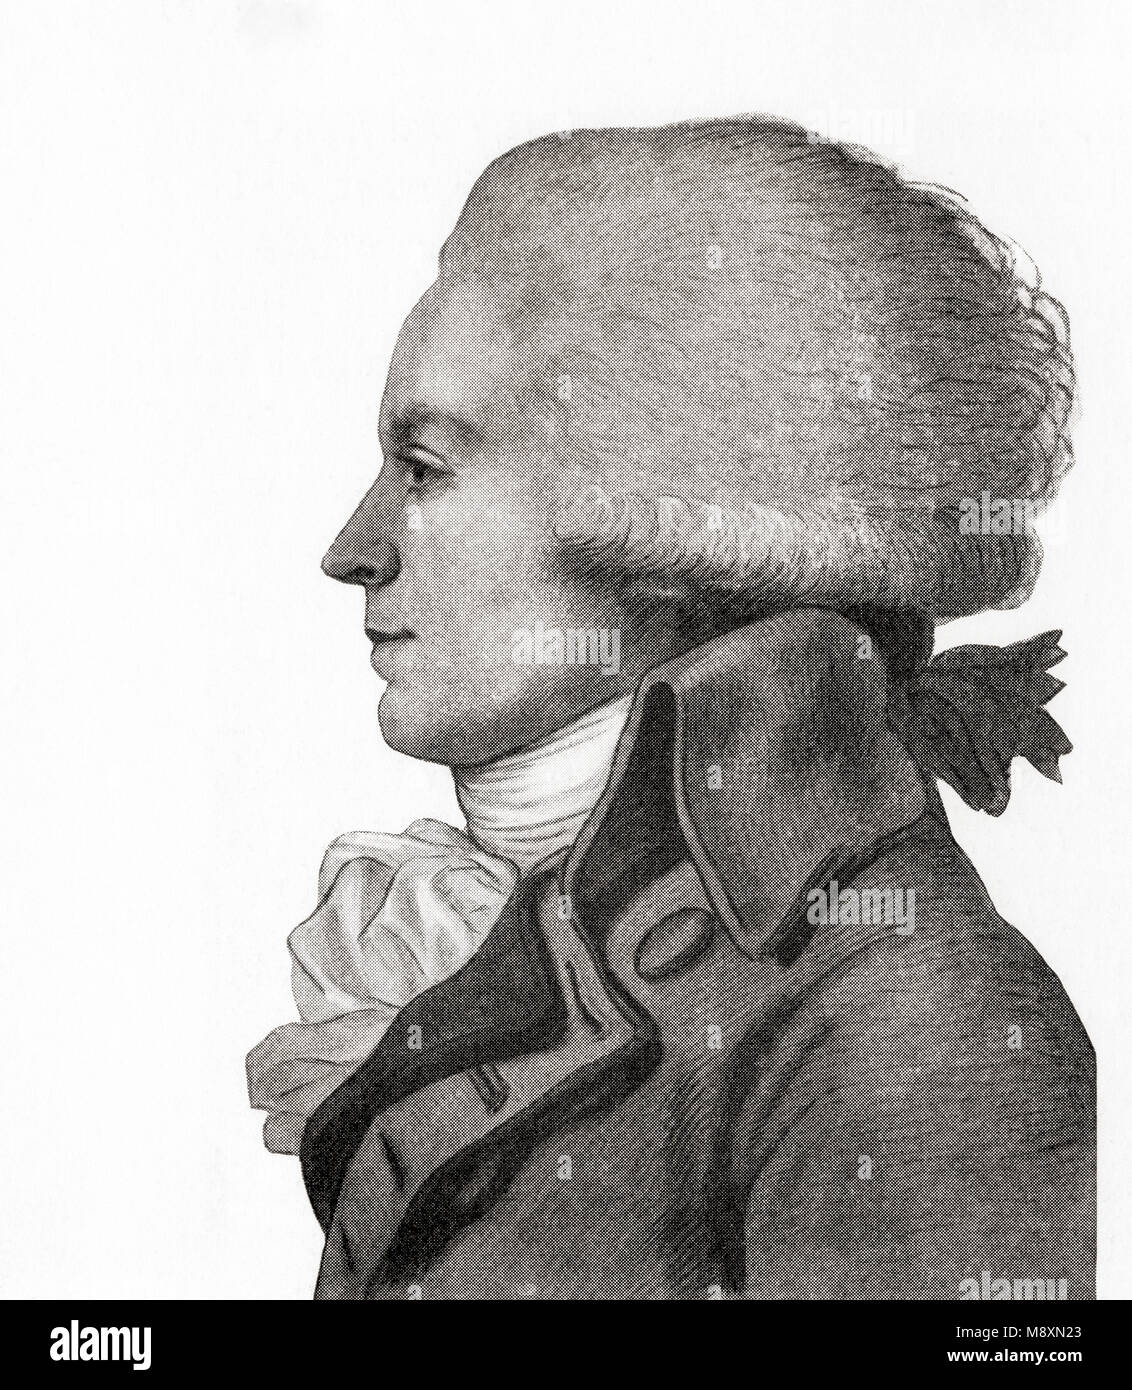 maximilien robespierre, the incorruptible leader essay Background government official, philosopher, scholar, lawyer, judge, activist, journalist born may 6, 1758 in arras, france mother died when he was 6, father abandoned family soon after.